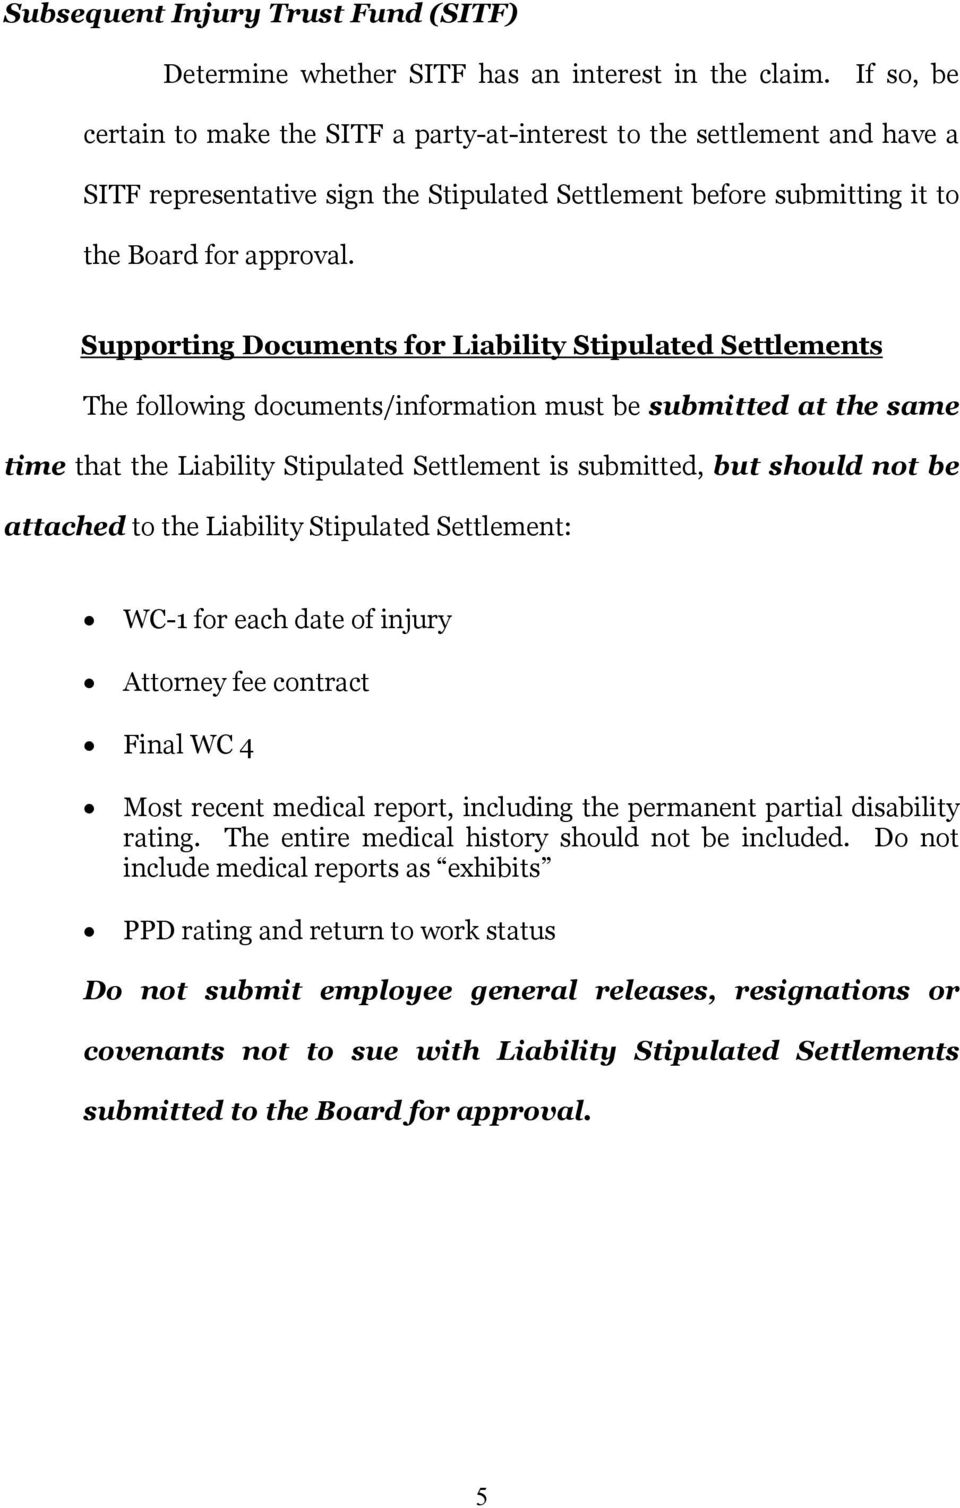 Supporting Documents for Liability Stipulated Settlements The following documents/information must be submitted at the same time that the Liability Stipulated Settlement is submitted, but should not